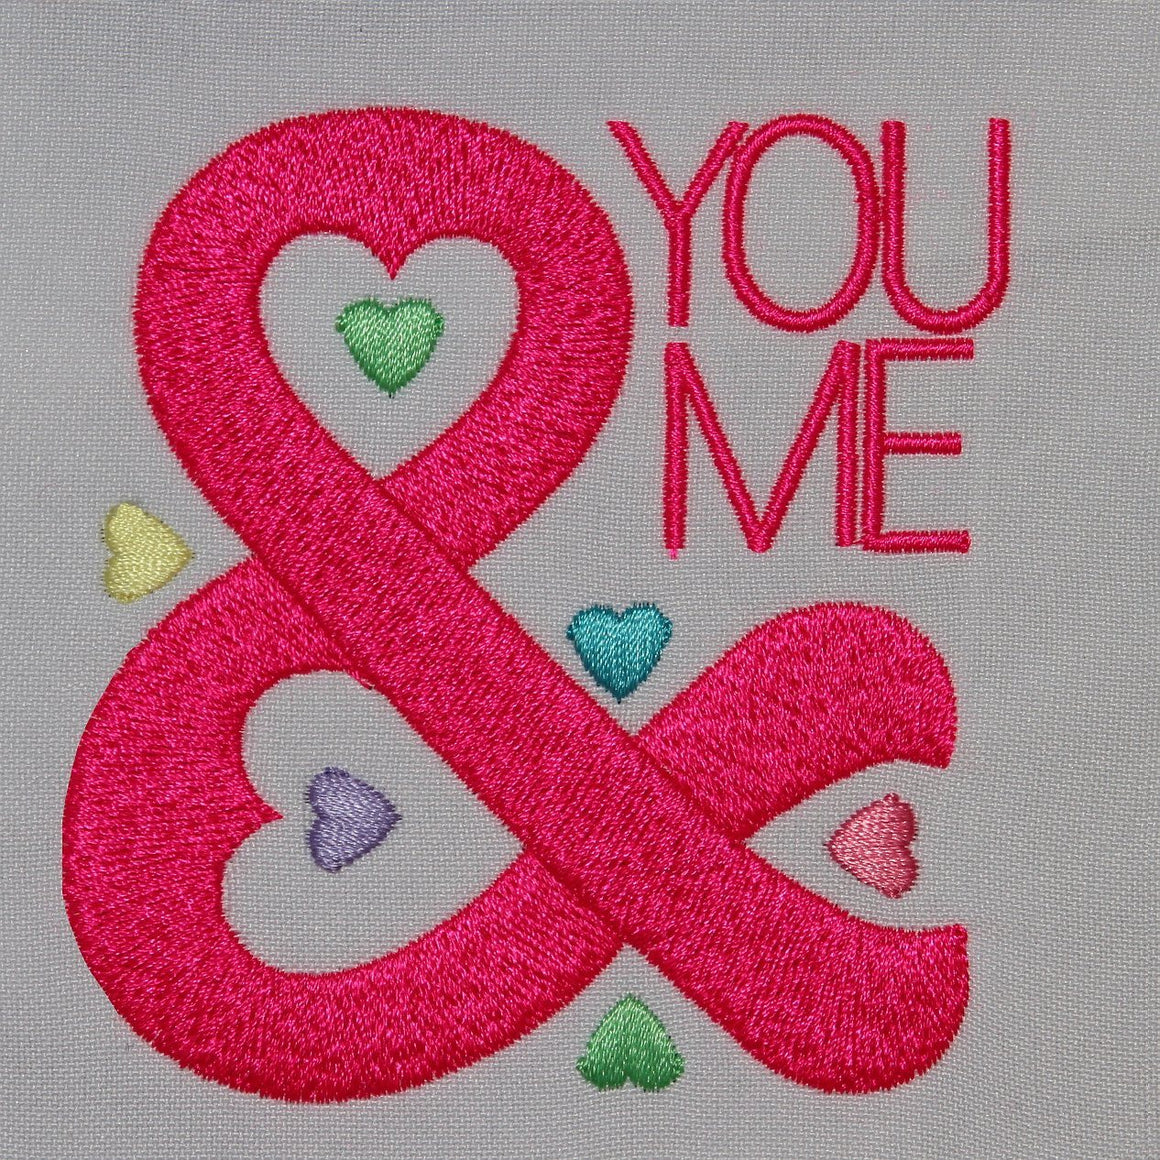 You and me with hearts - a-stitch-a-half